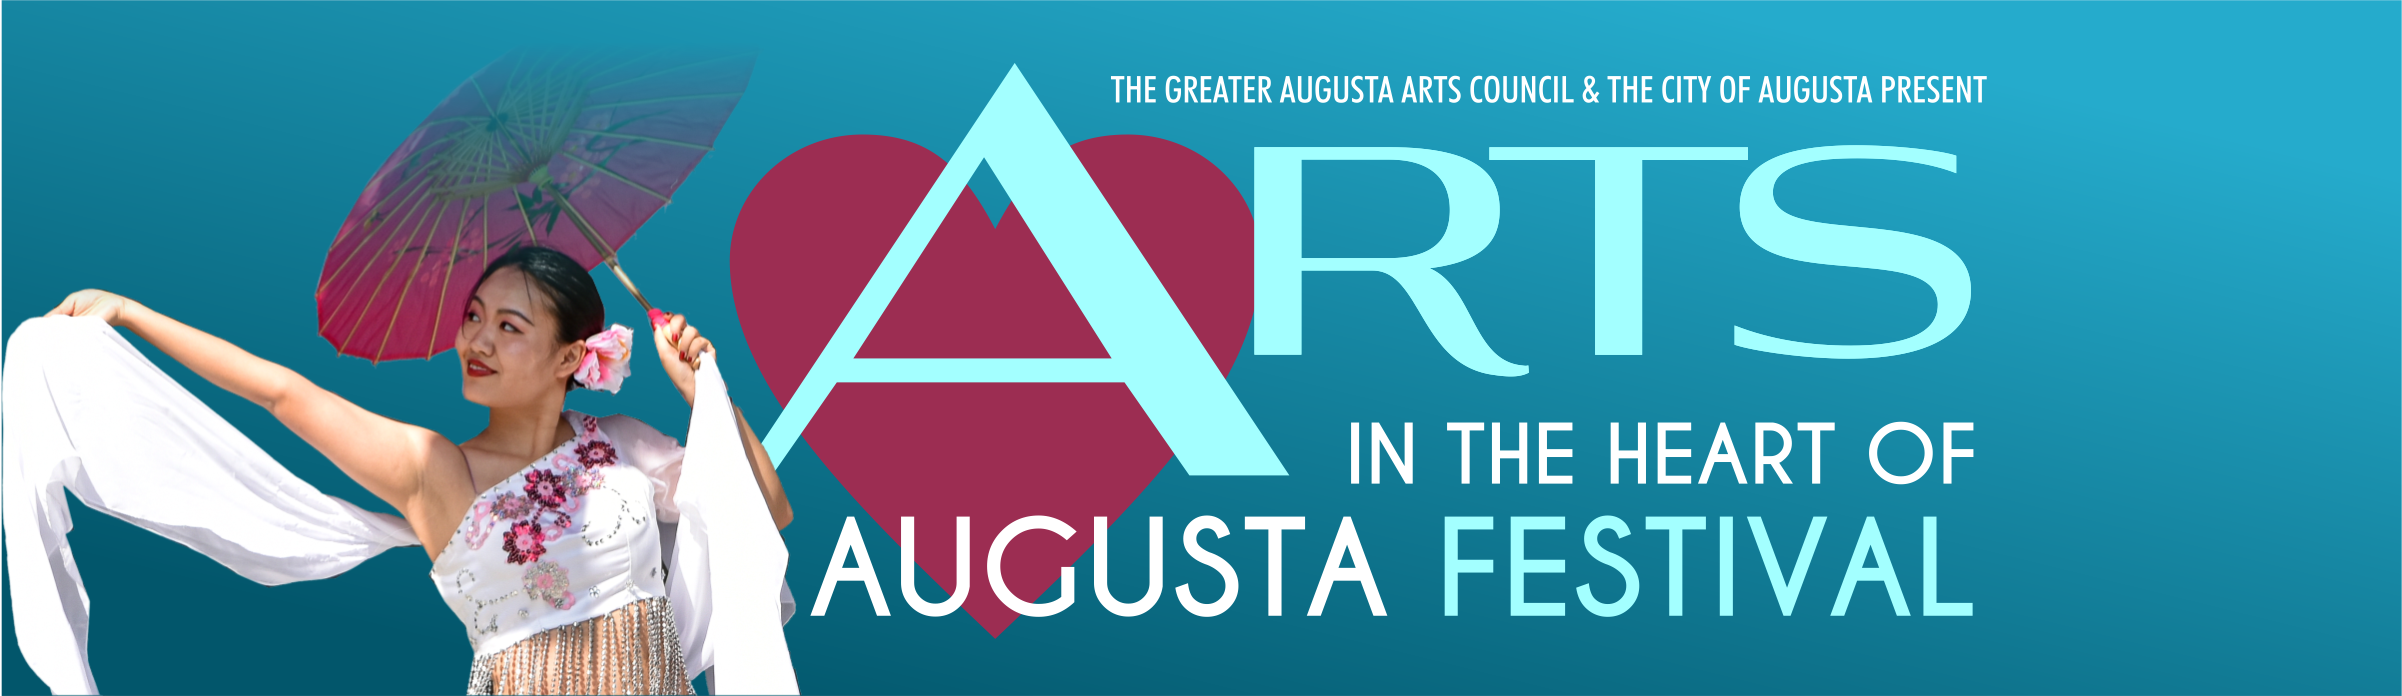 Arts in the Heart of Augusta Festival *2020 Event Cancelled*